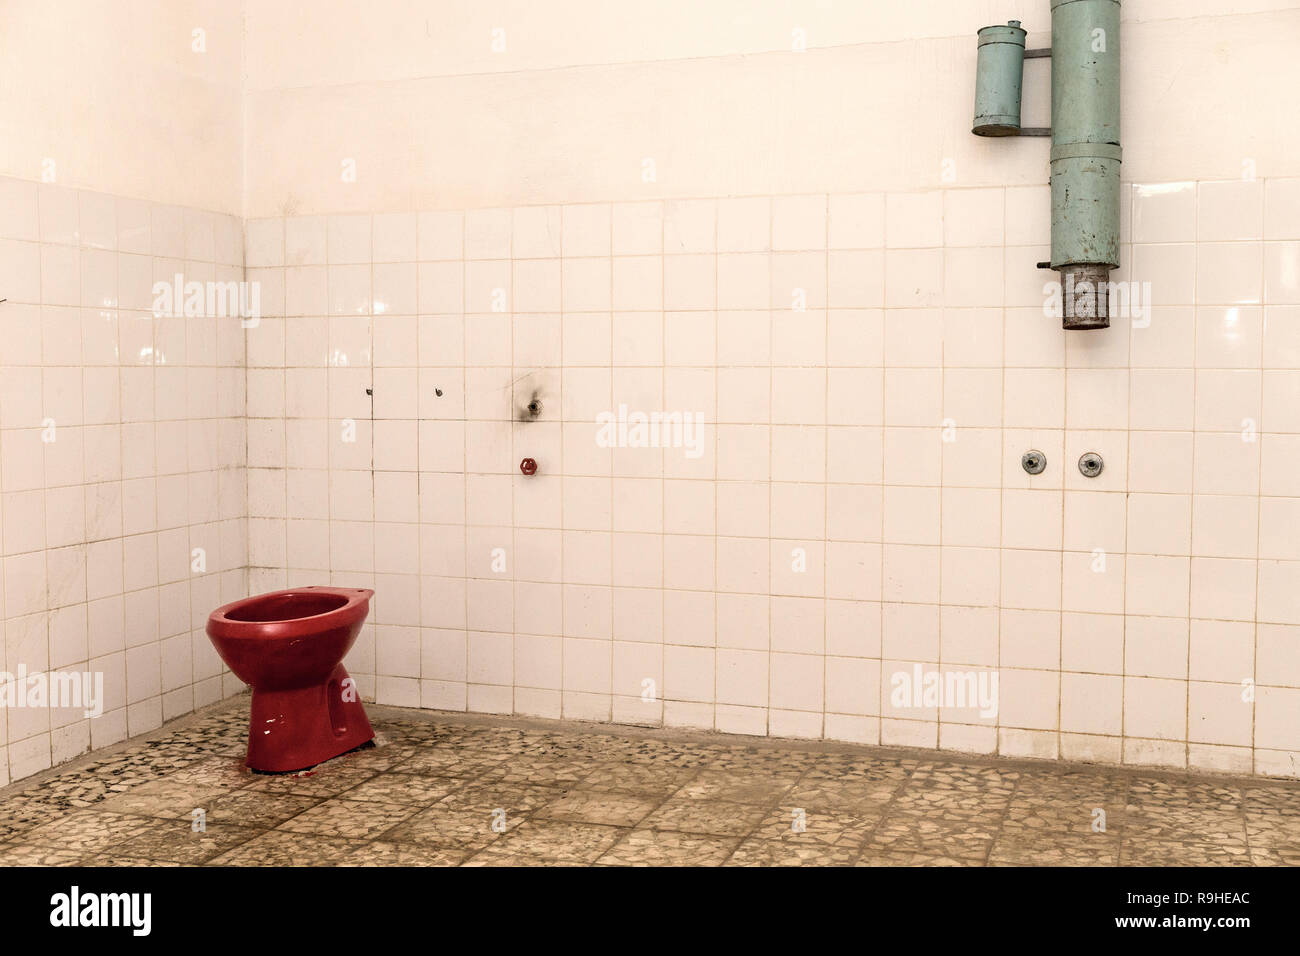 Red communist toilet Bunk'Art nuclear bunker Tirana Albania - Stock Image